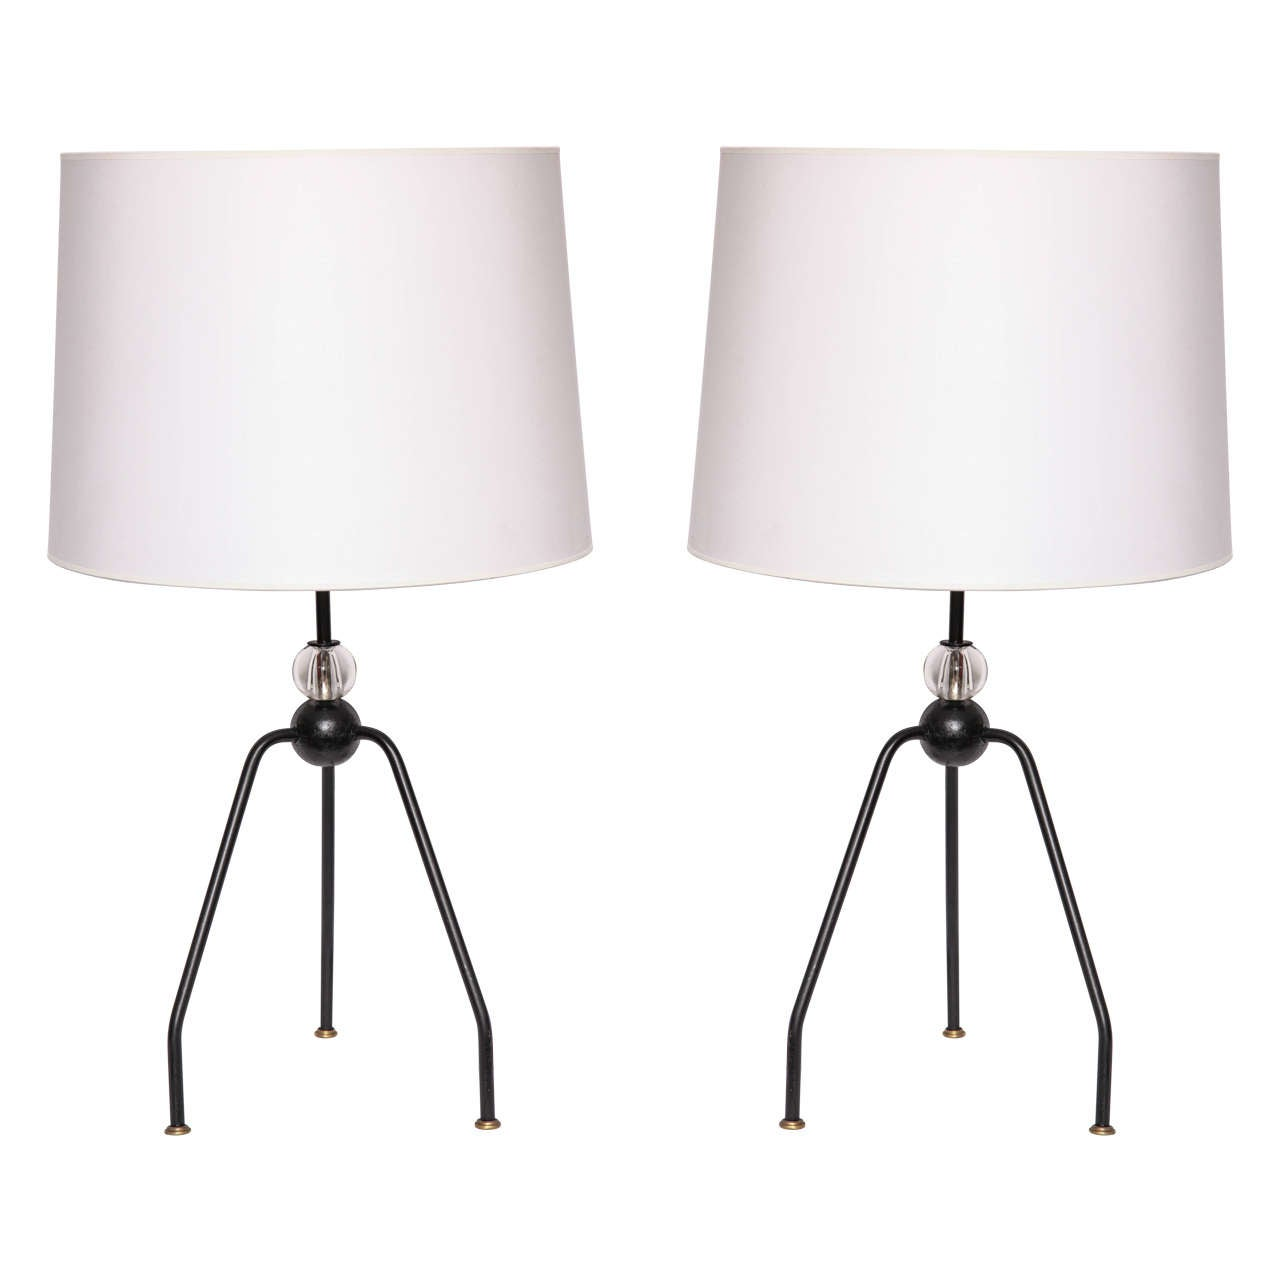 Pair of 1940s French Art Moderne Table Lamps